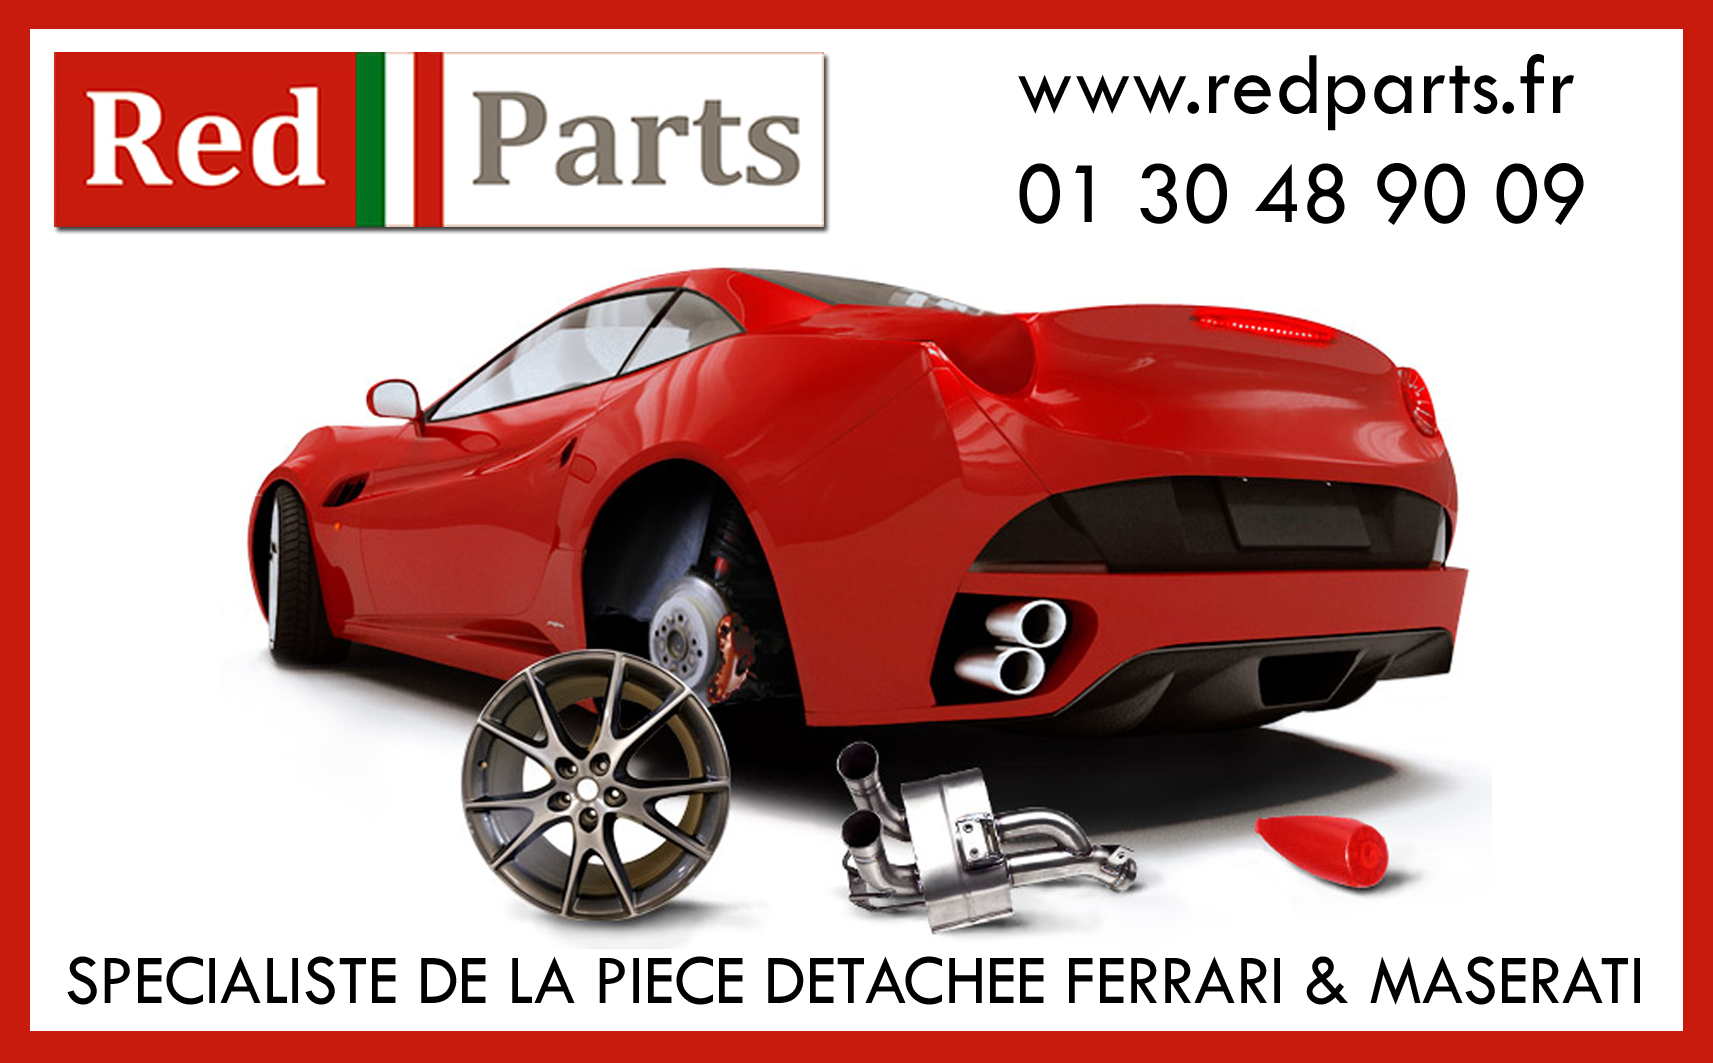 REDPARTS